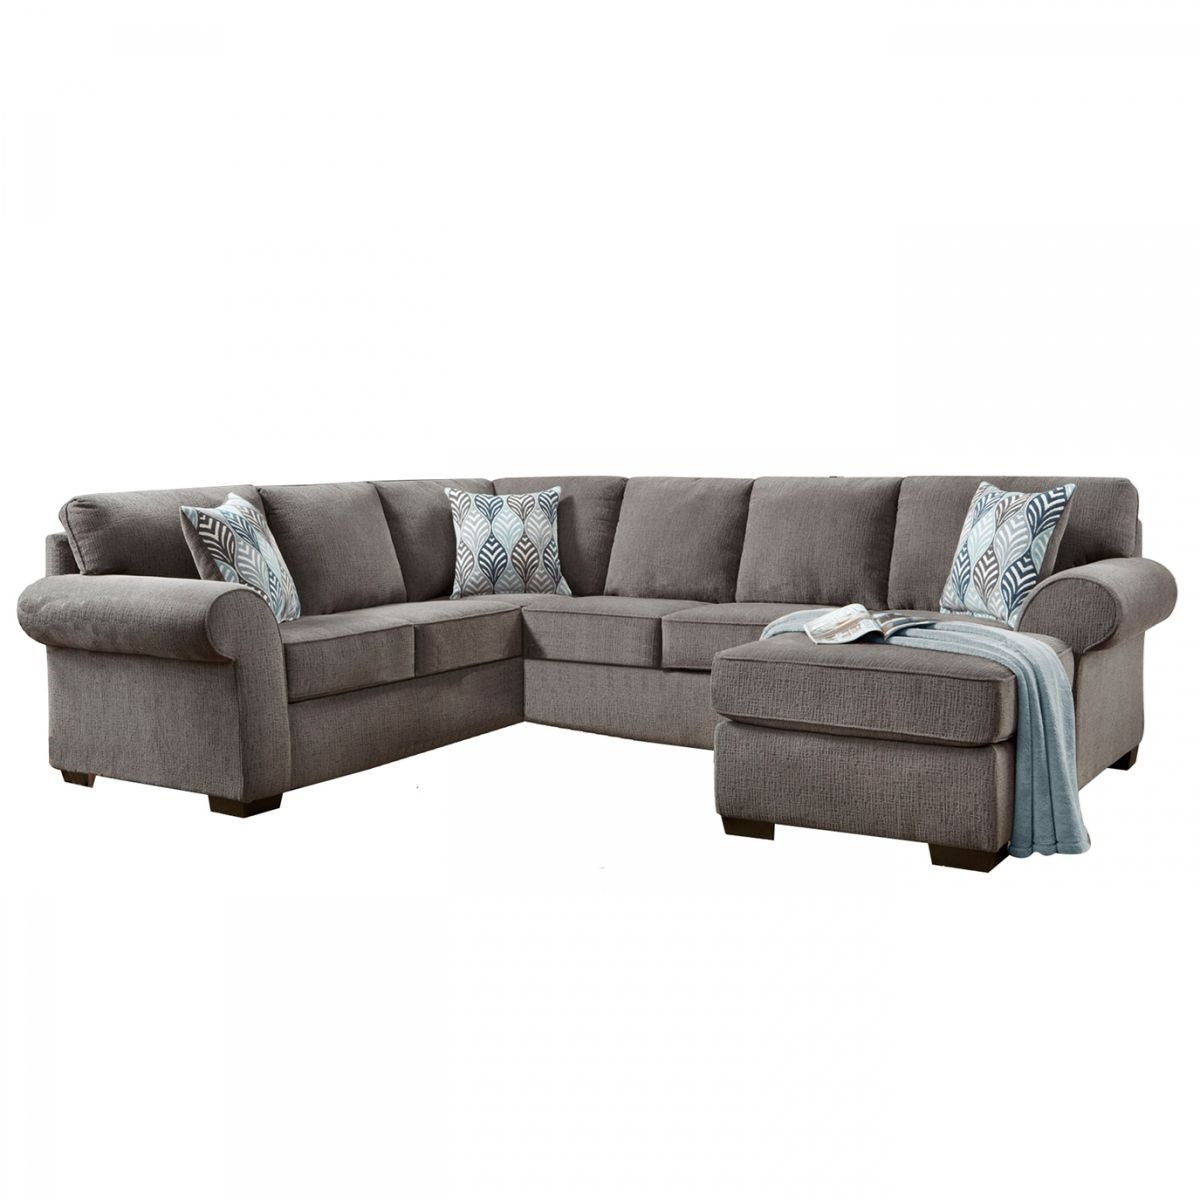 Fabric Sectional Sofa In Grey Shop For Affordable Home Furniture In Mcdade Graphite Sofa Chairs (View 20 of 20)